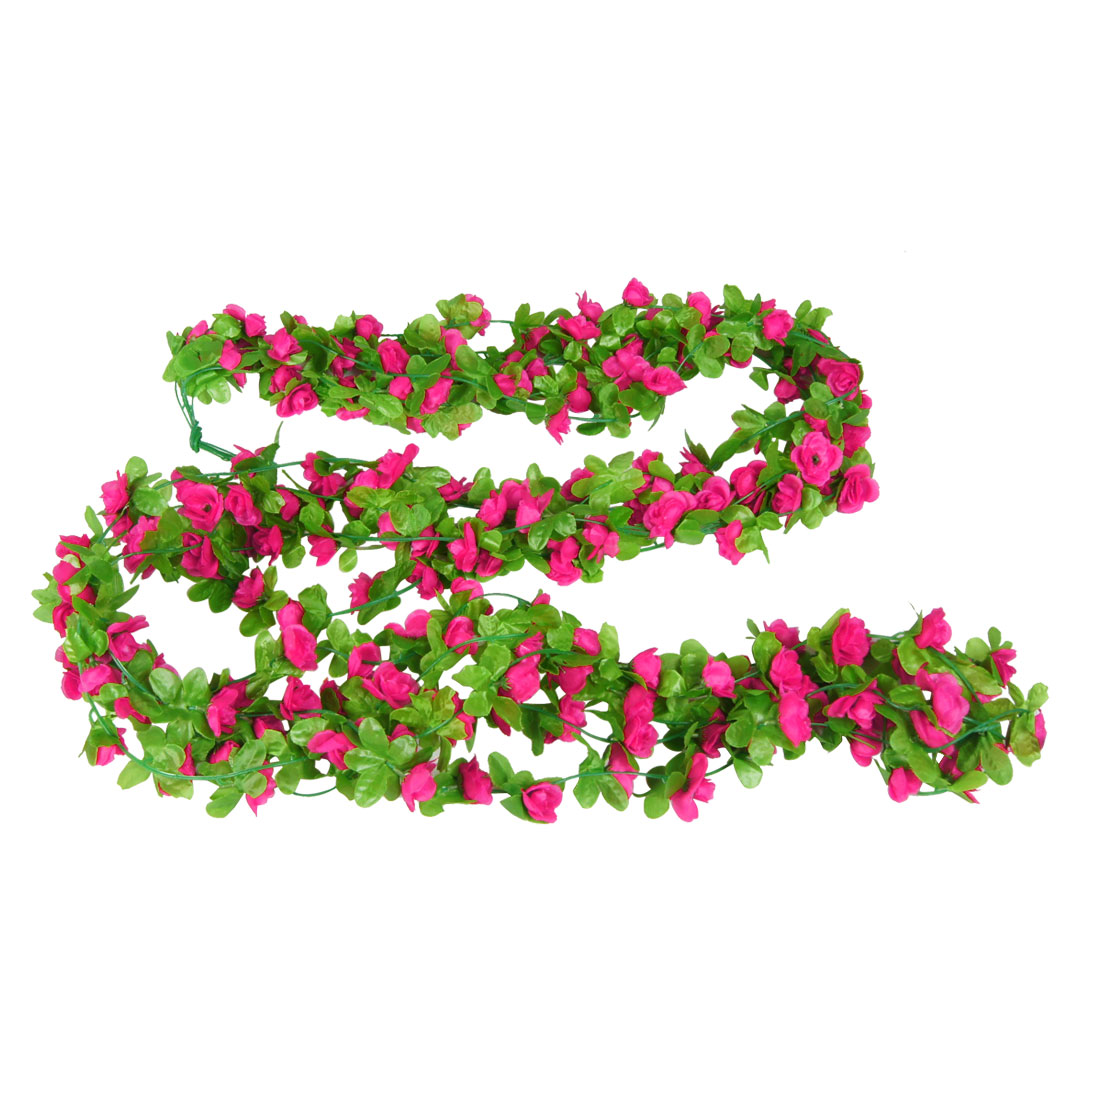 6.6Ft Long Artificial Magenta Flower Green Leaf Hanging Vine 5 Pcs